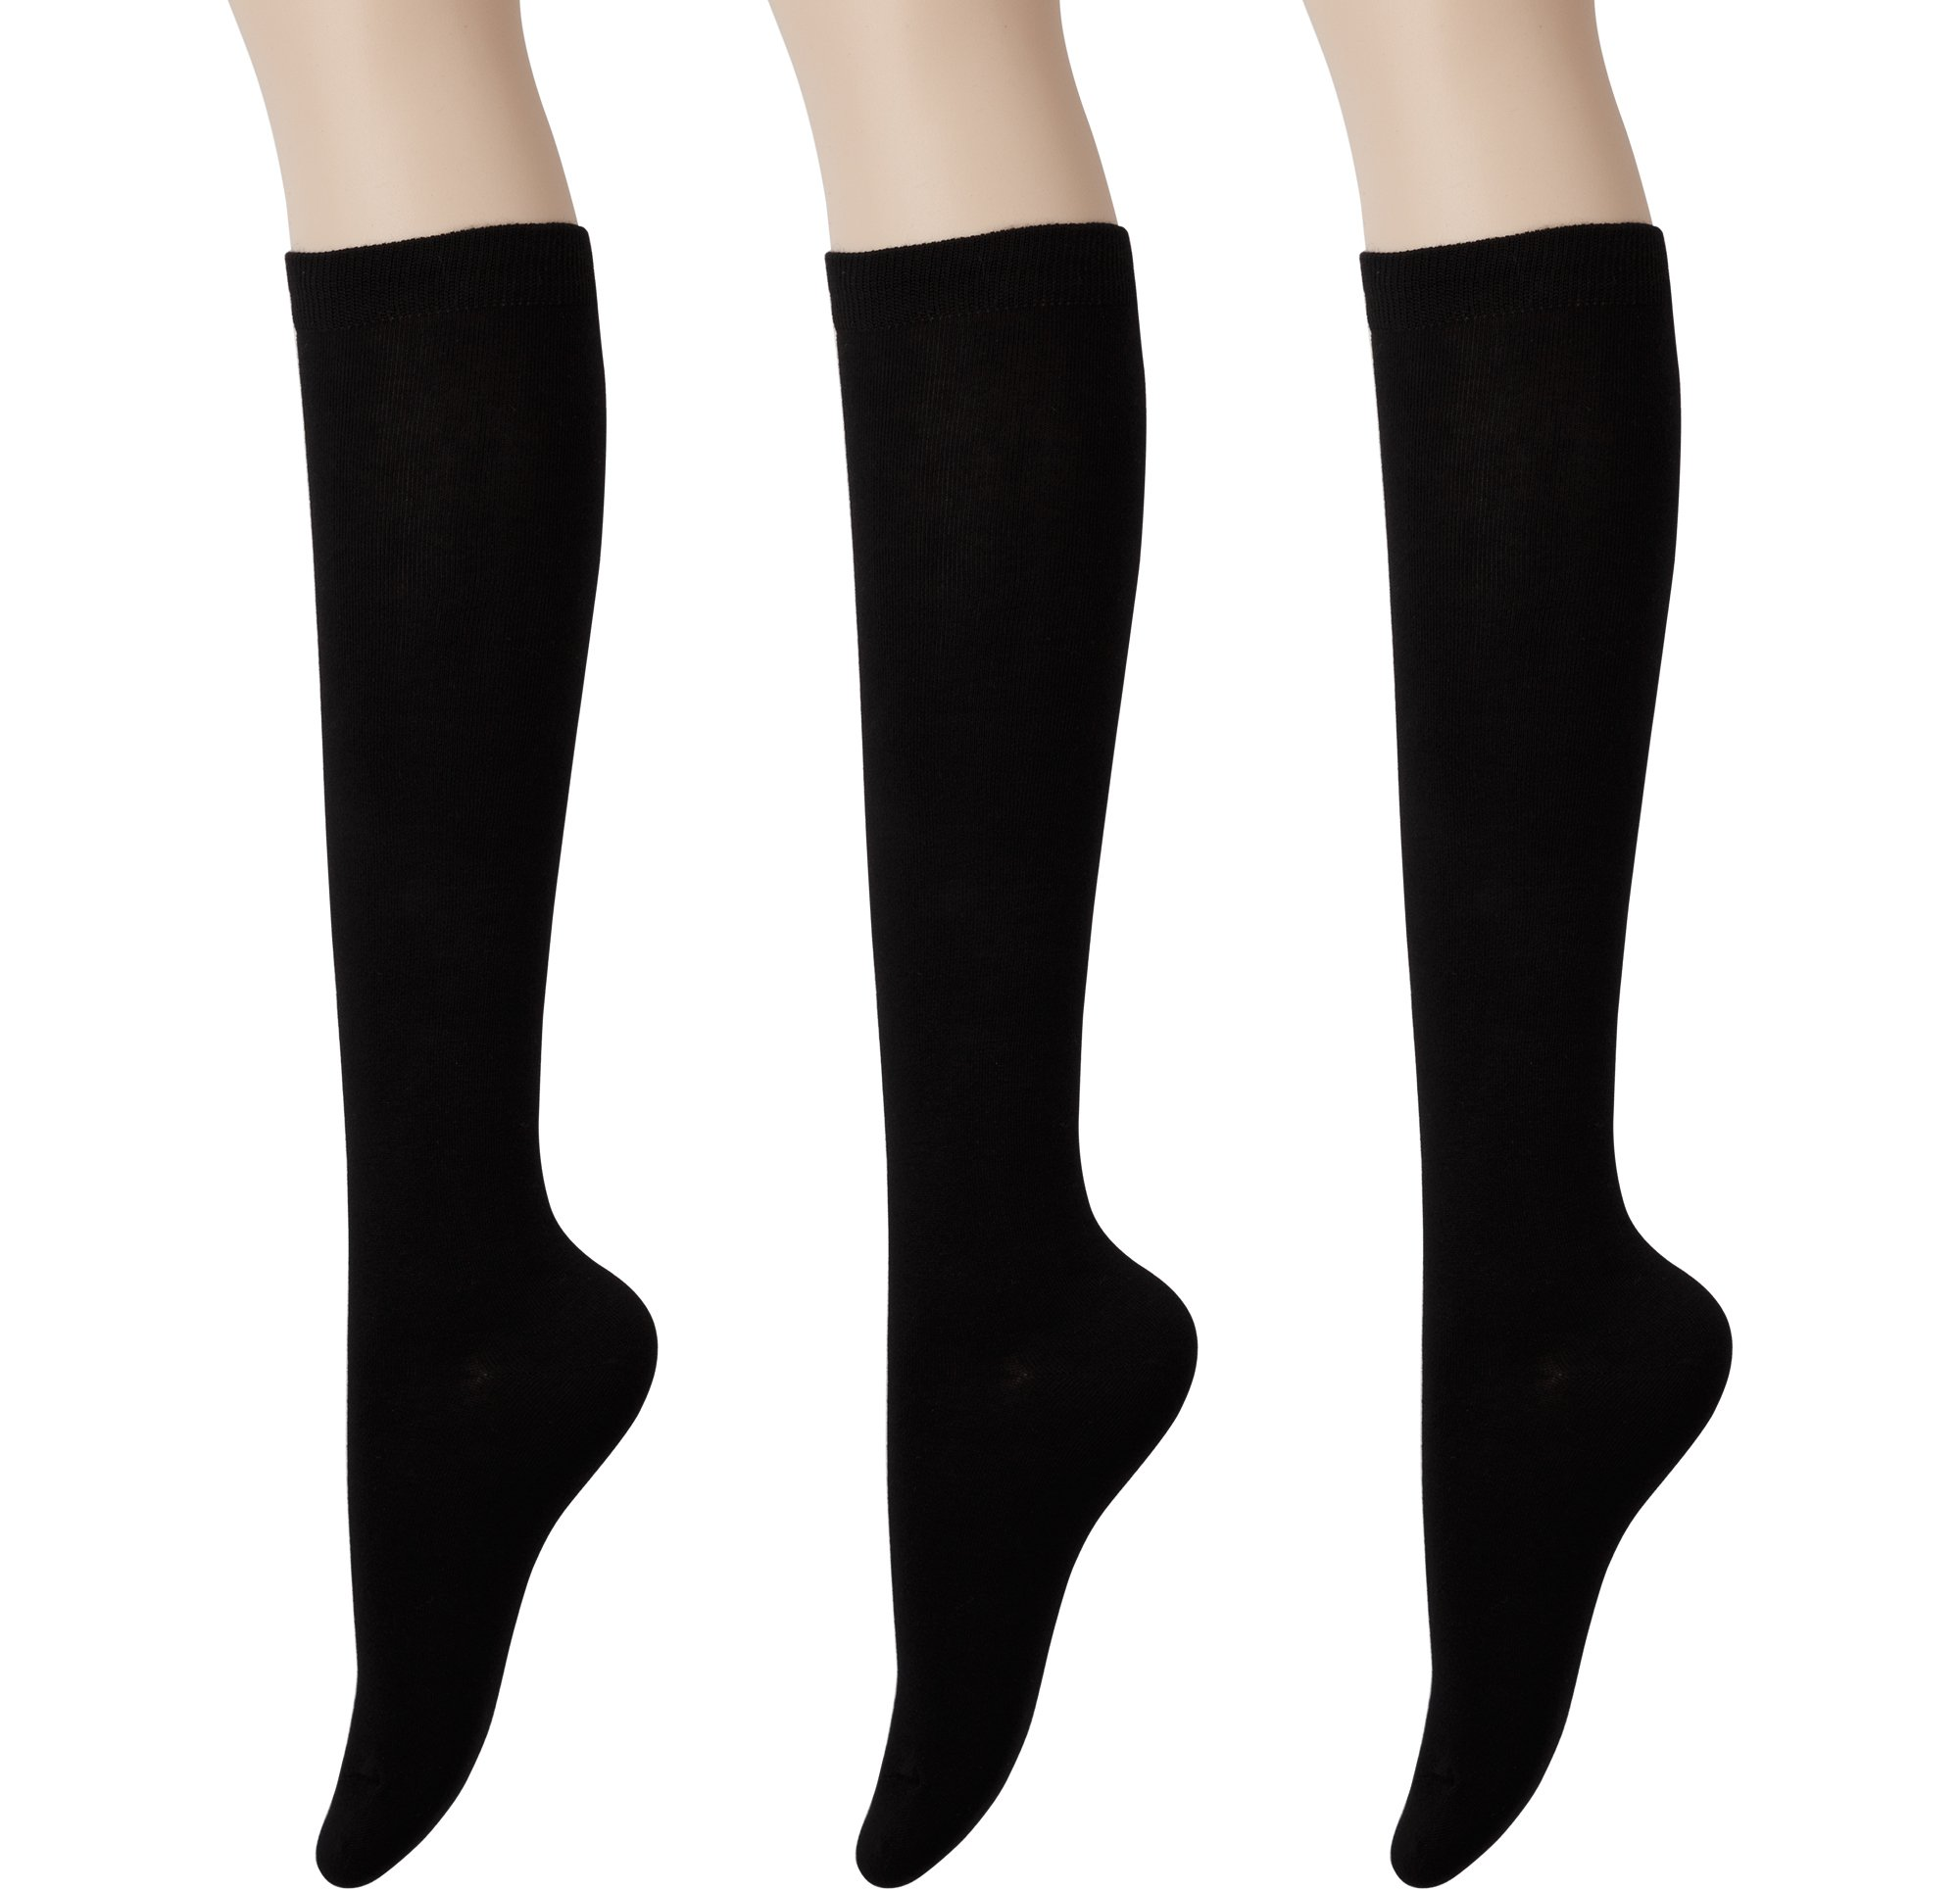 KONY Womens Cotton Knee High Socks - Casual Solid & Triple Stripe Colors Fashion Socks 3 Pairs (Womens Shoe Size 5-10) (Solid Black - 3 Pairs)